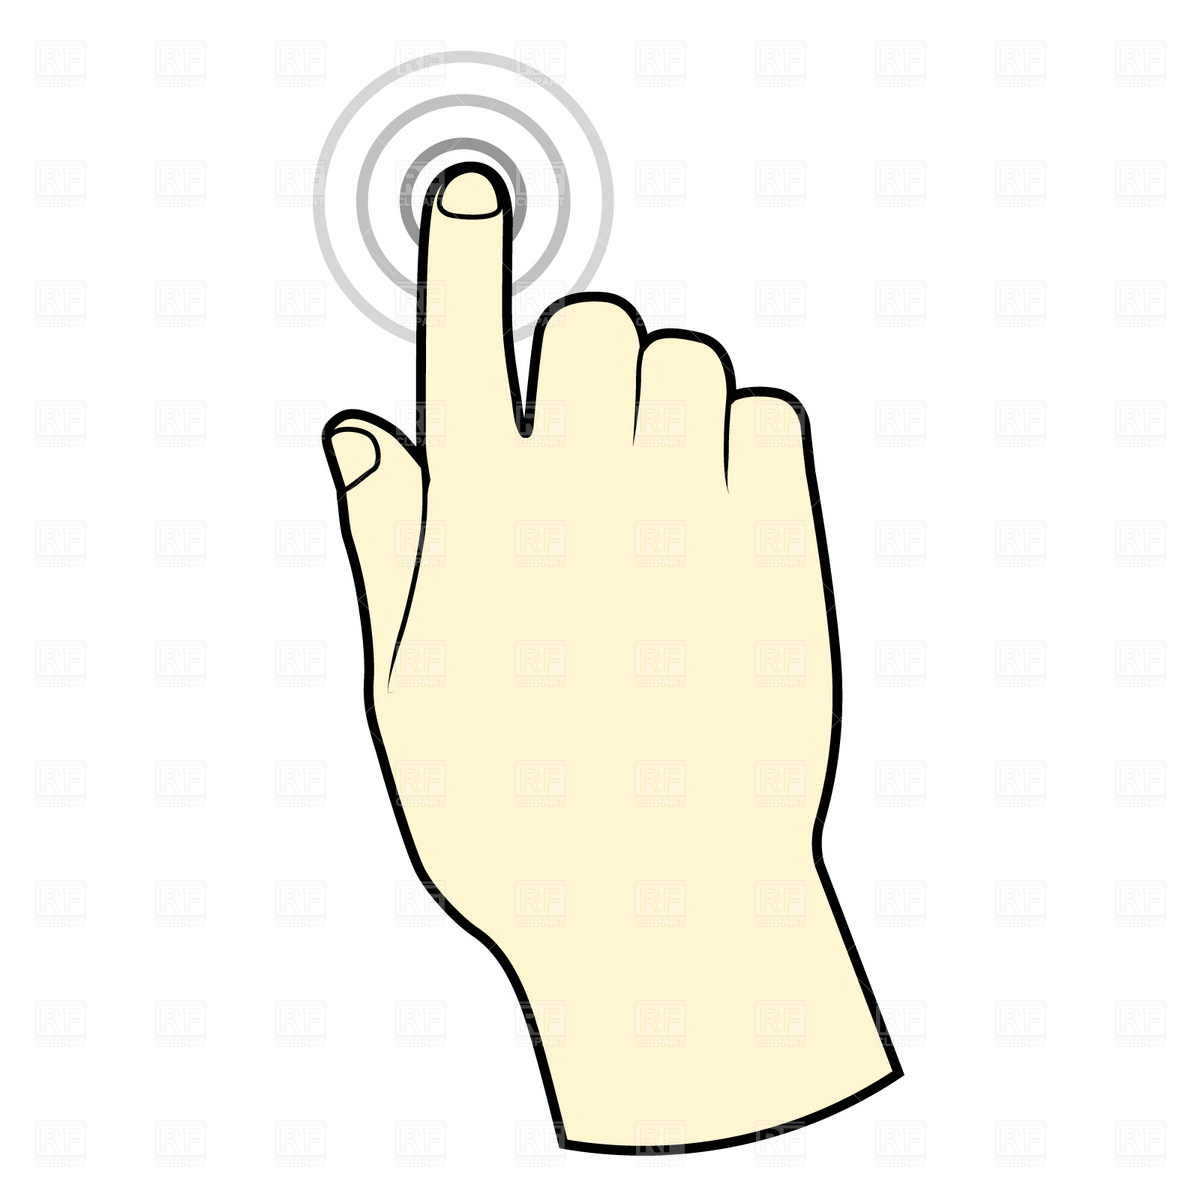 free download best. Fingers clipart sense touch